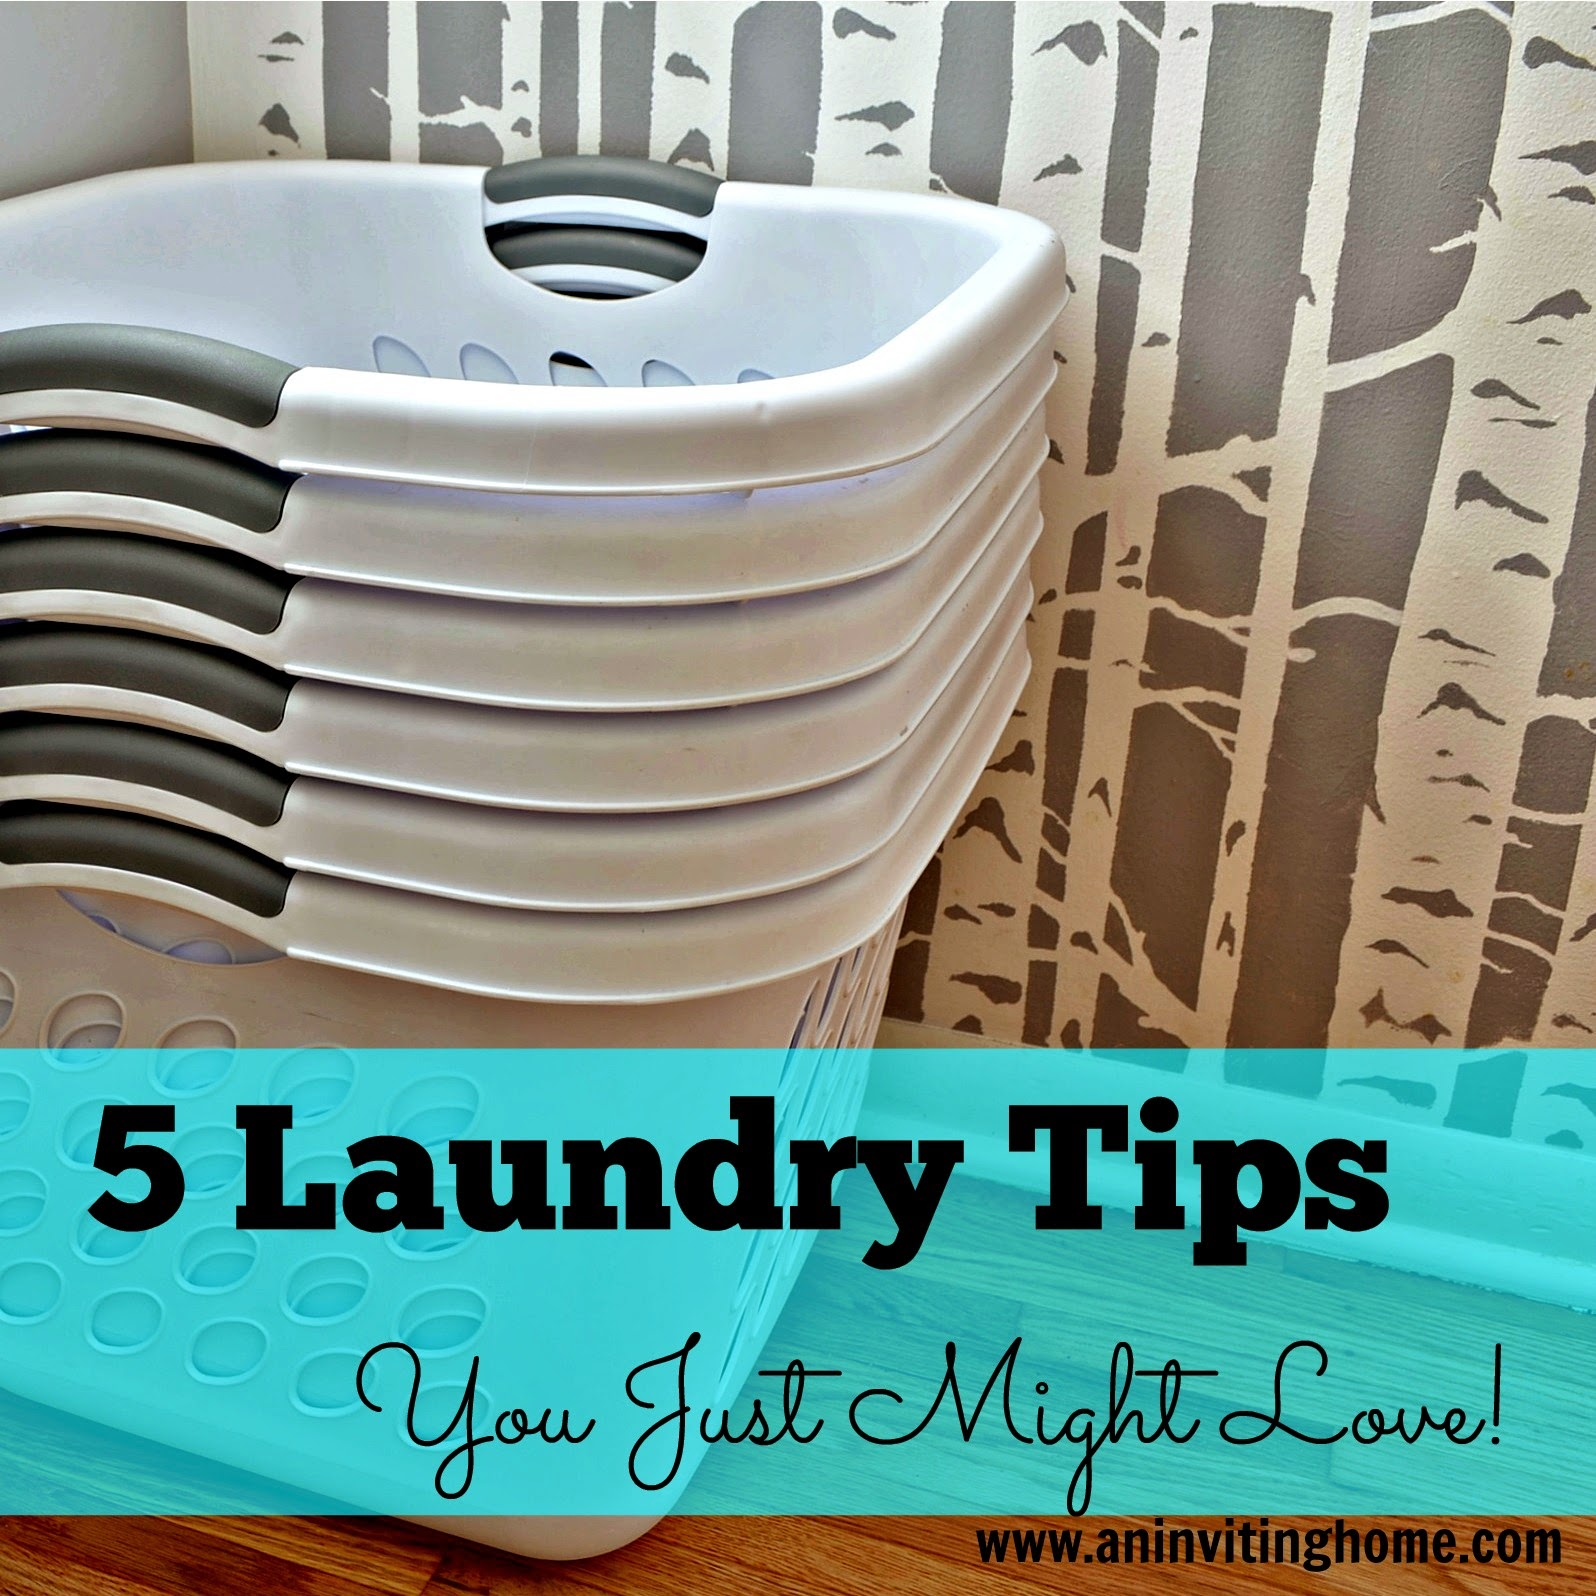 5 Laundry Tips You Just Might Love